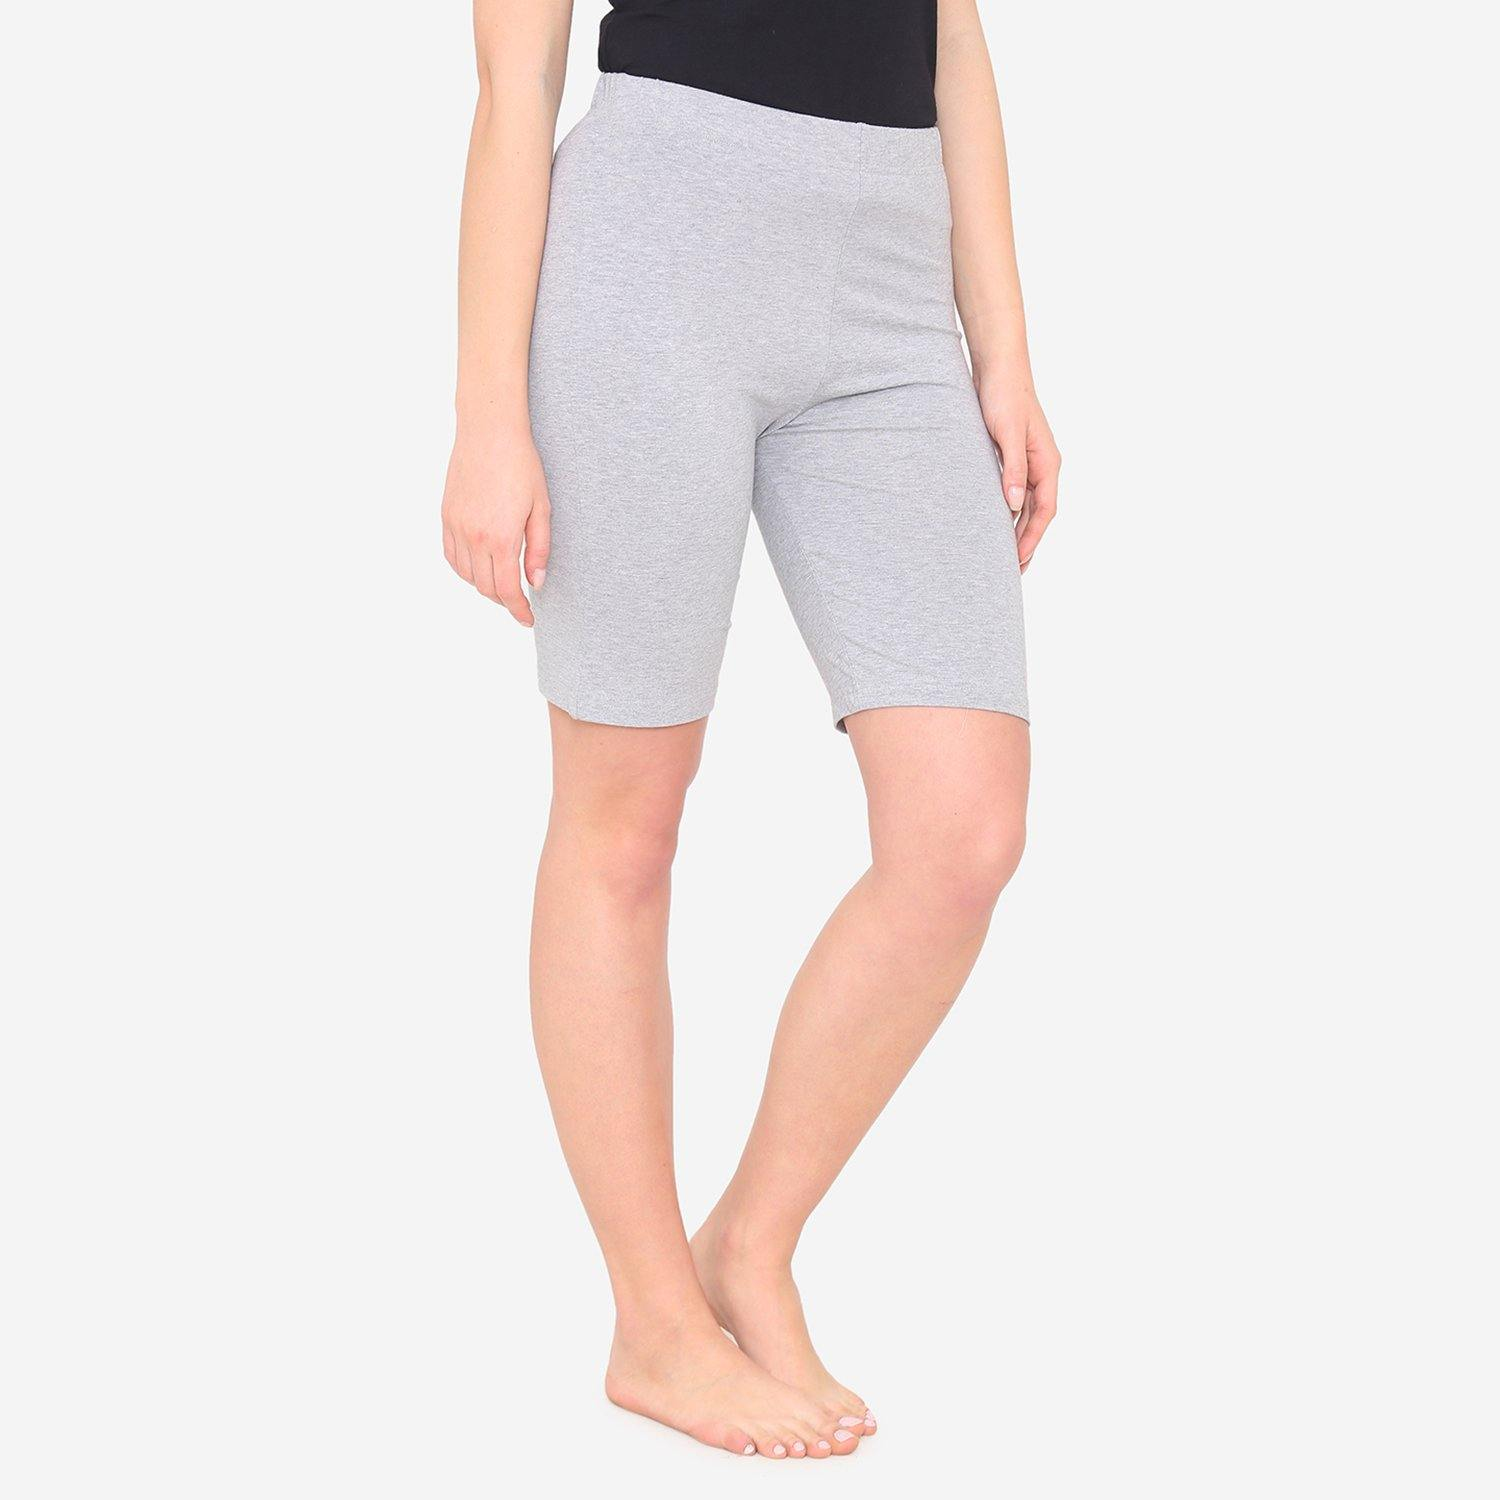 Women's Casual  Plain Shorts for Summer - Light Grey